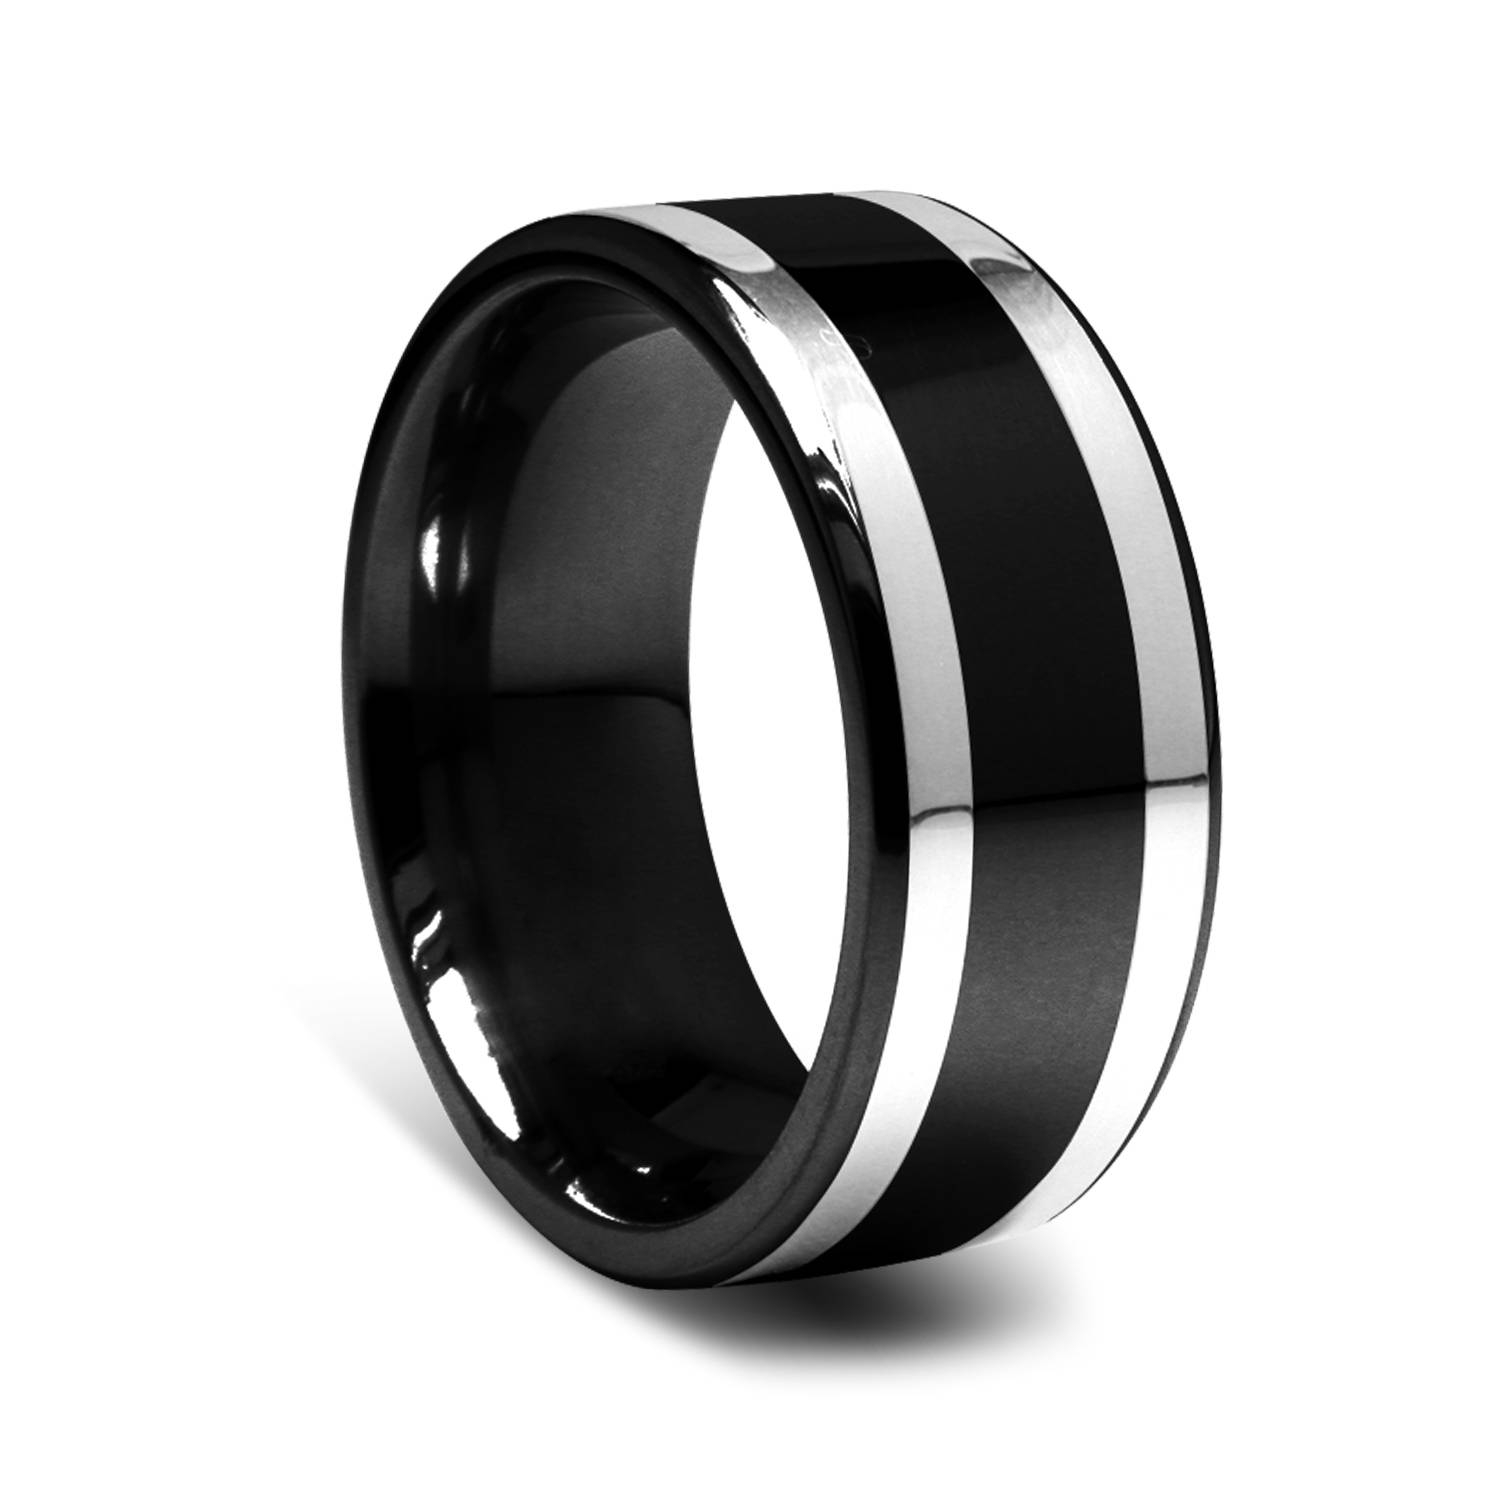 Wedding Rings : White Gold Mens Wedding Band With Black Diamonds Regarding Men's Black Wedding Bands With Diamonds (View 15 of 15)